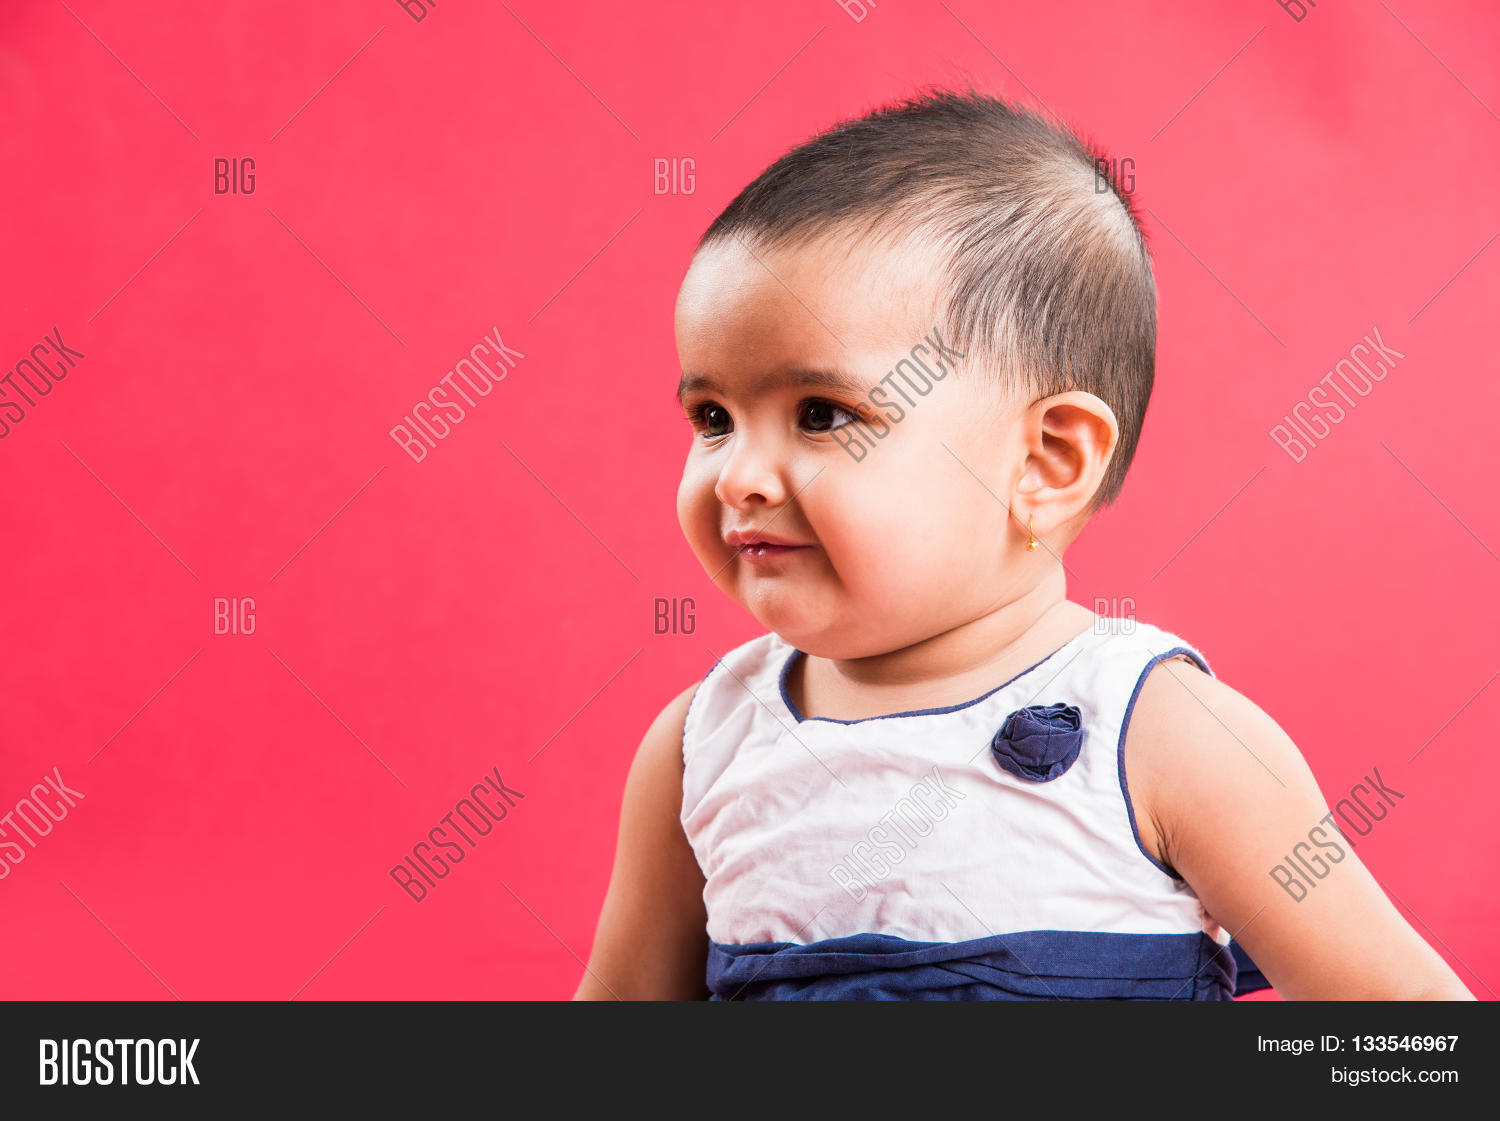 portrait cute indian image & photo (free trial) | bigstock